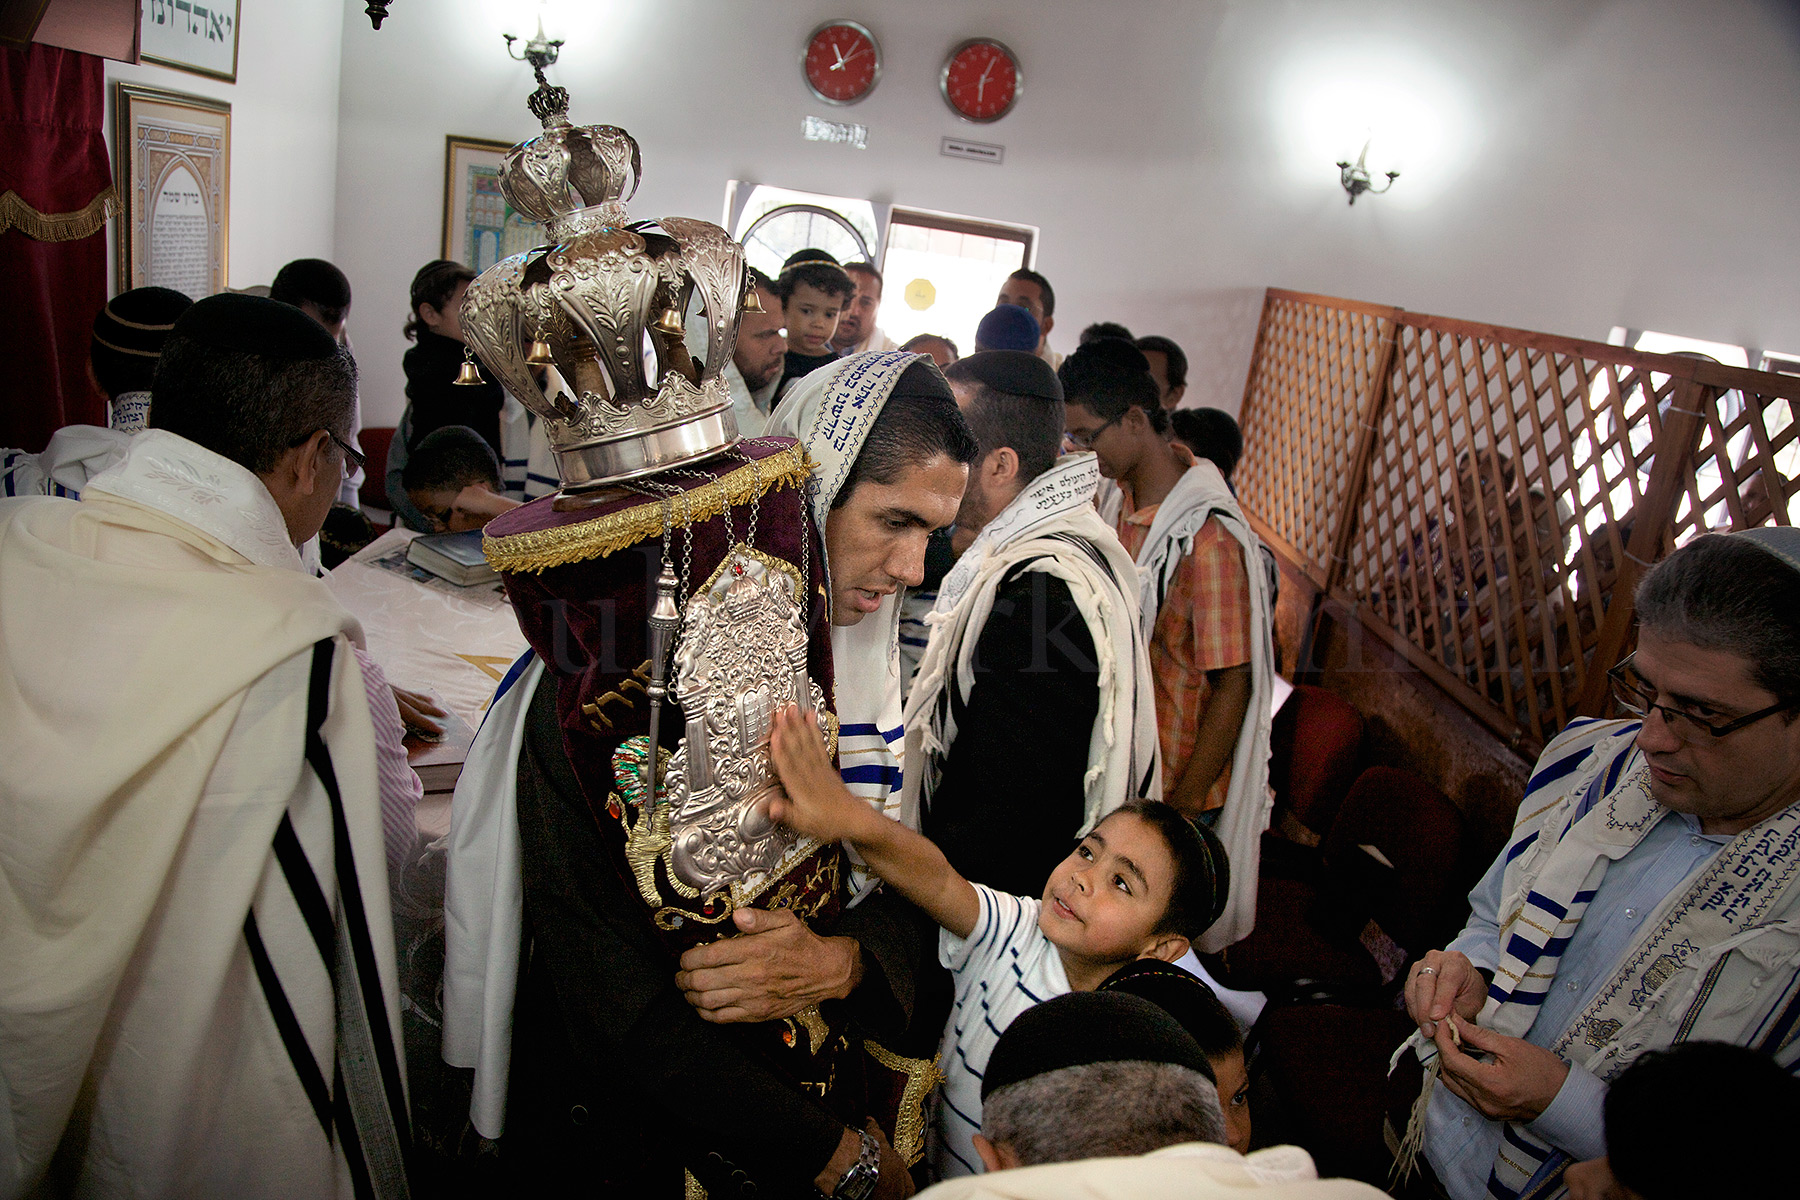 Evangelical Christian converts to Judaism with a 120 year old Torah in a synagogue in Bello, Colombia